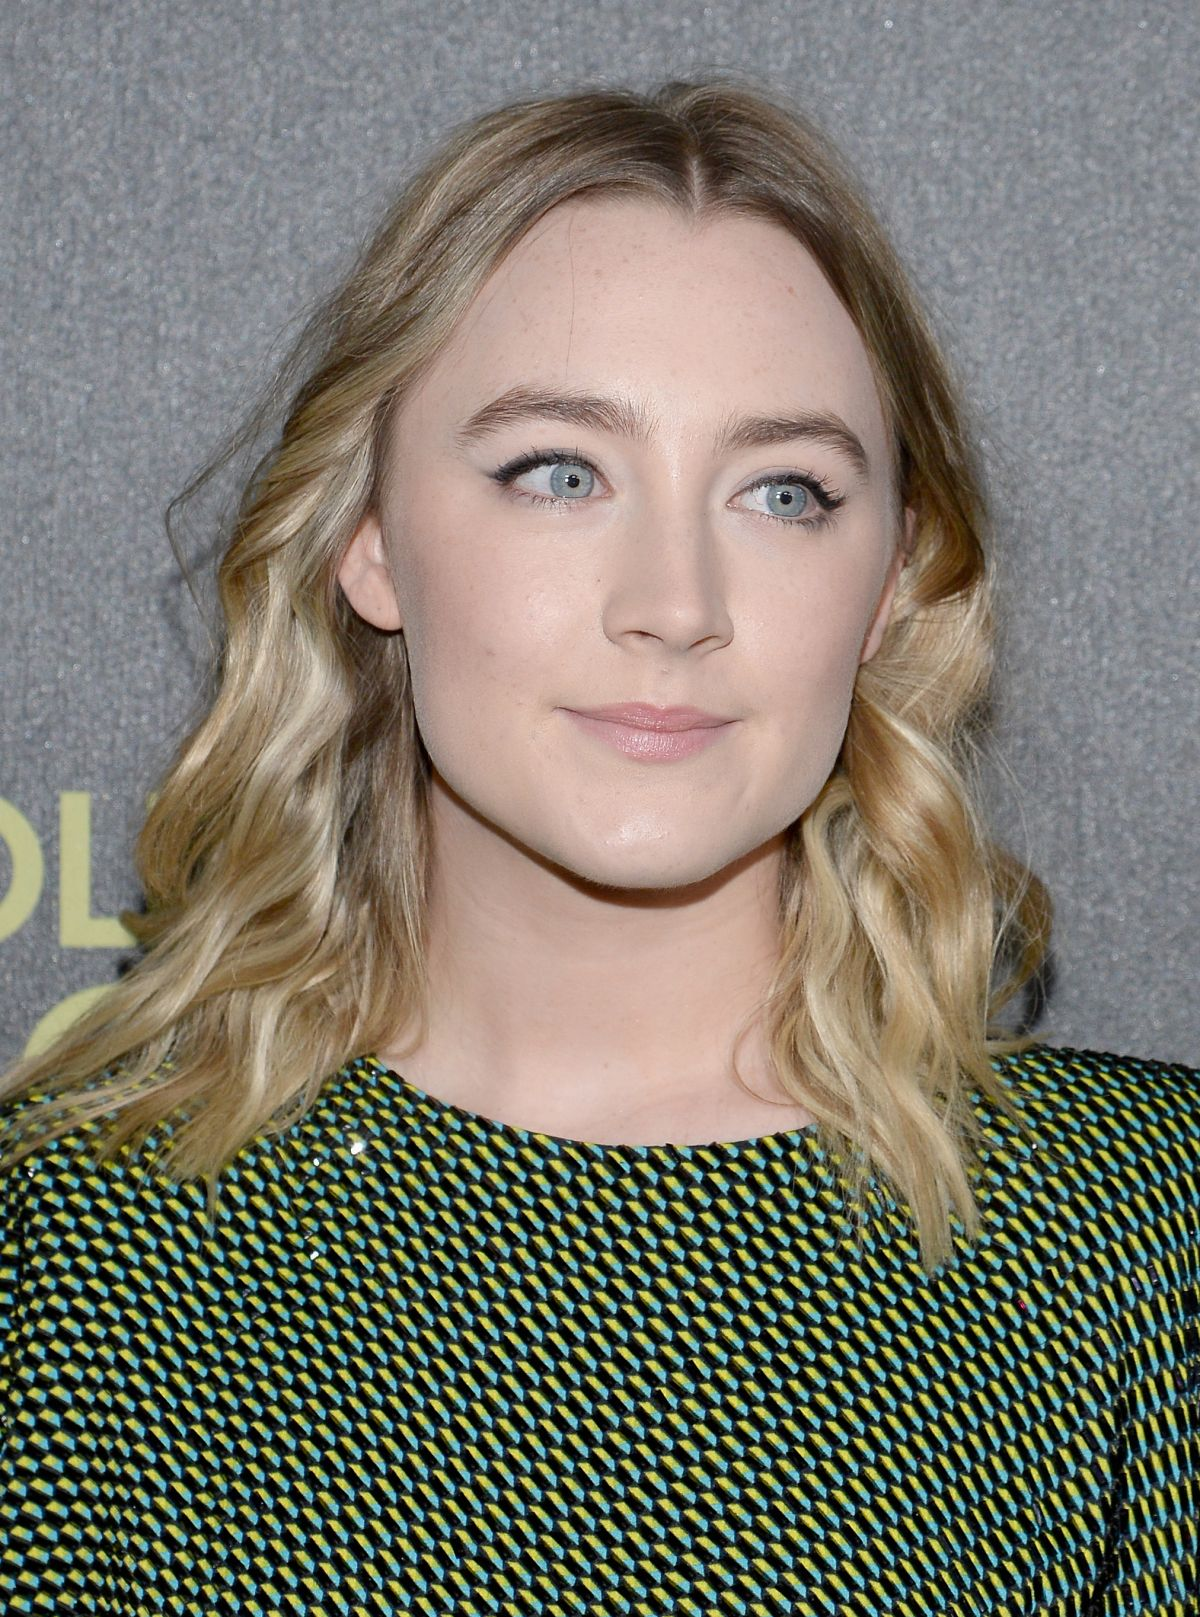 SAOIRSE RONAN at hfpa and Instyle Celebrate 2016 Golden Globe Award Season in West Hollywood 11/17/2015